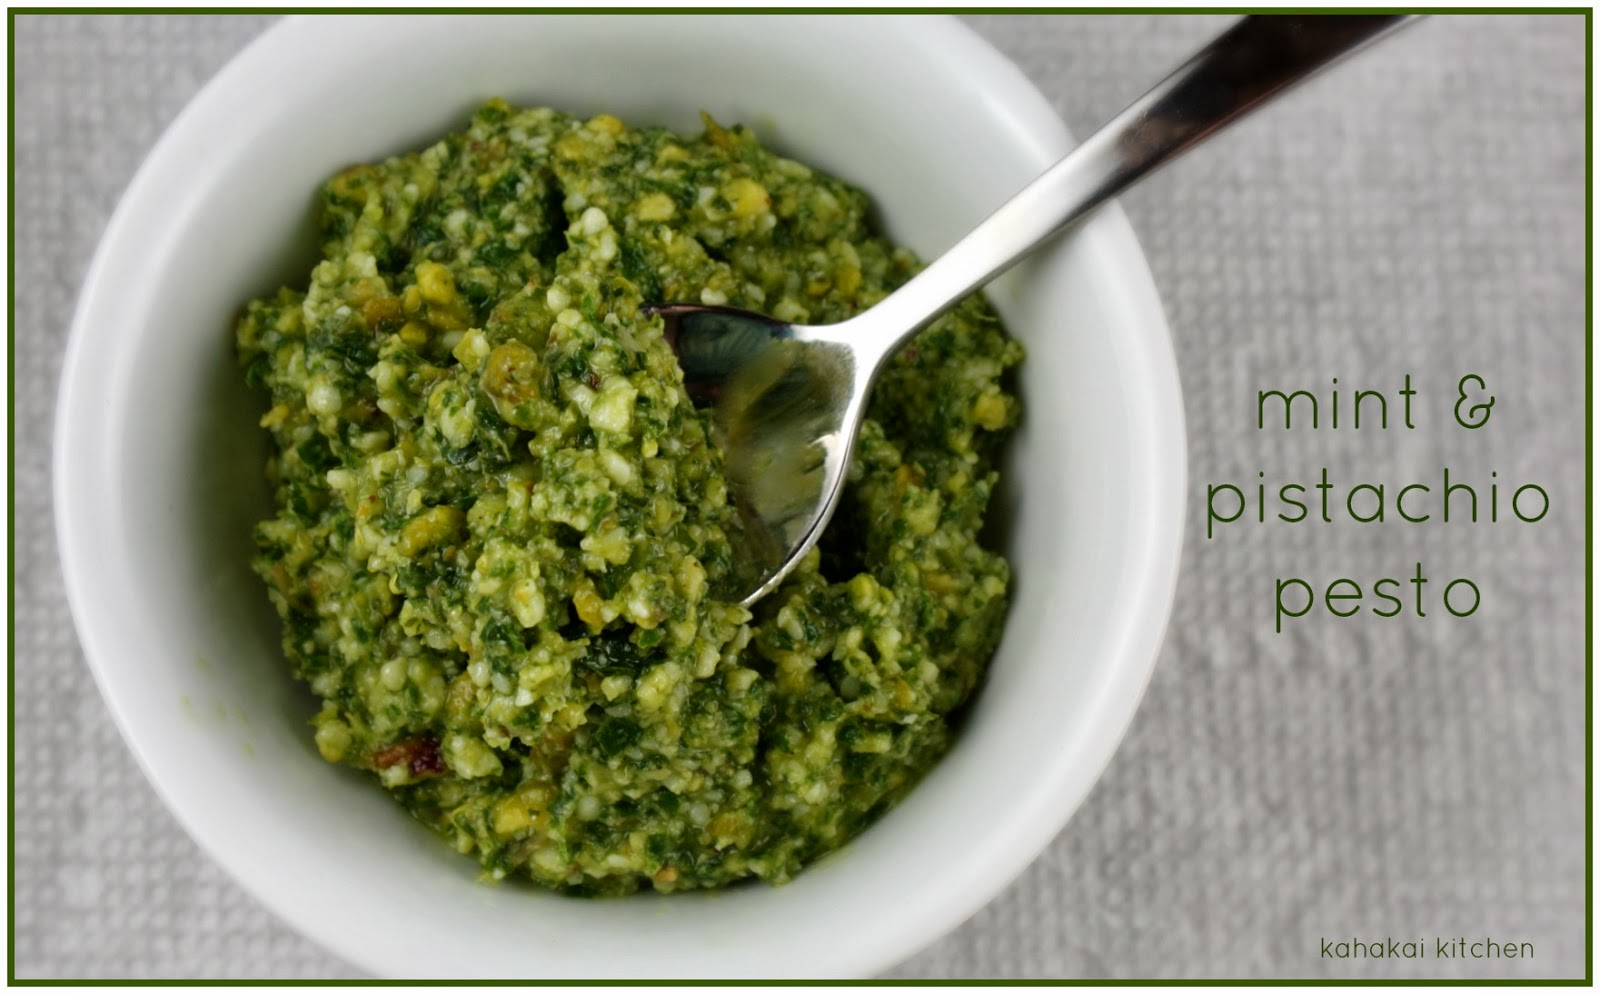 mint pesto mint and pistachio pesto mint basil pistachio pesto mint ...